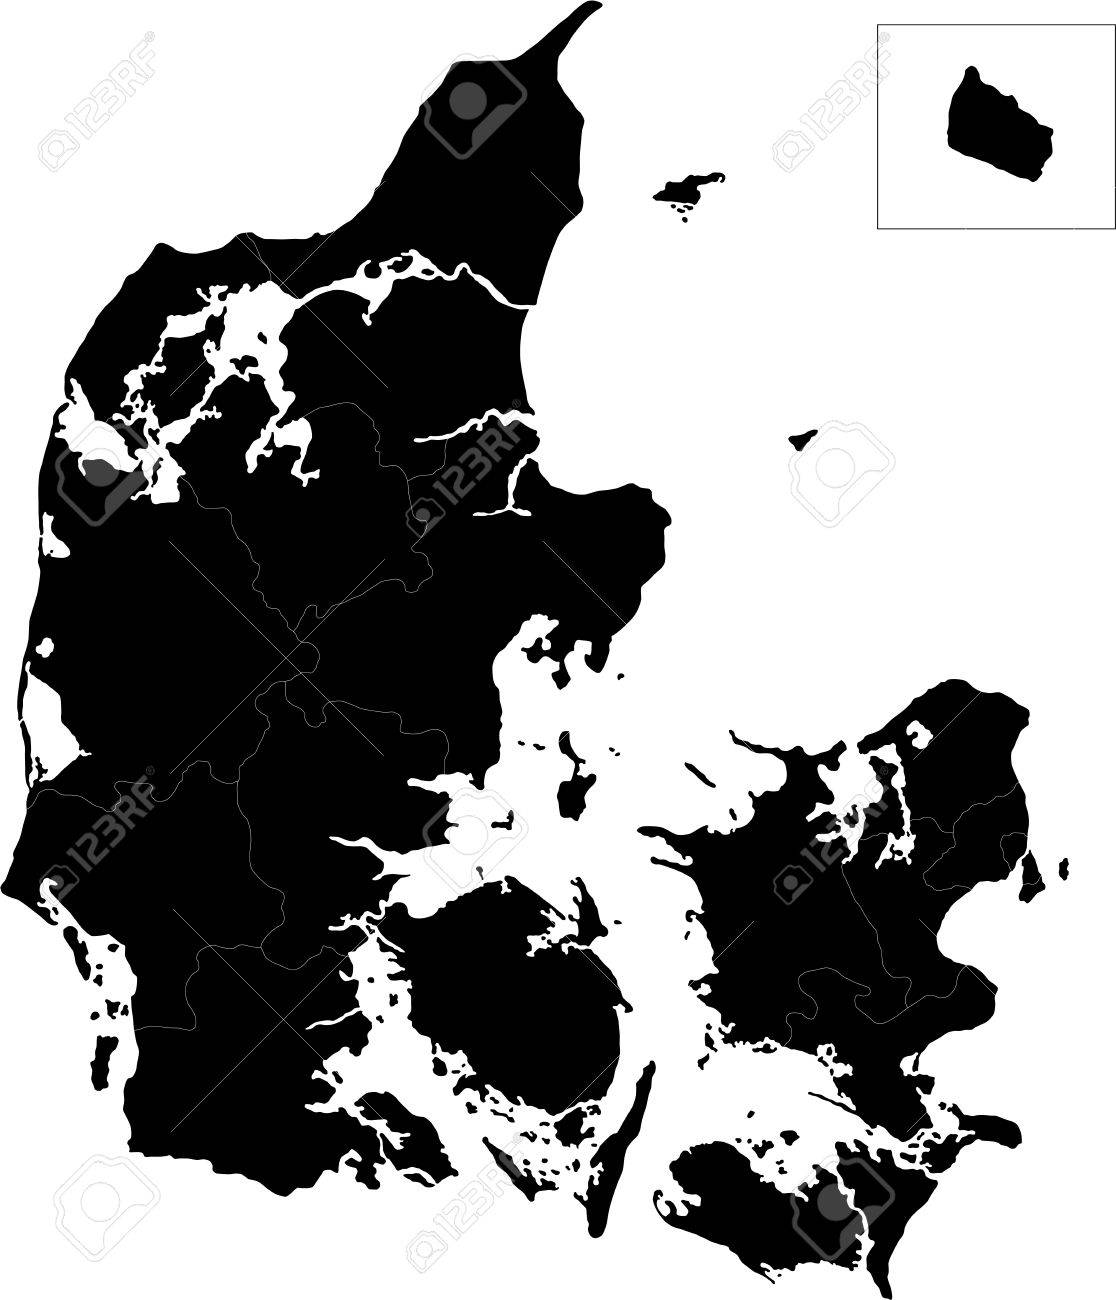 Map of administrative divisions of Denmark - 21813572